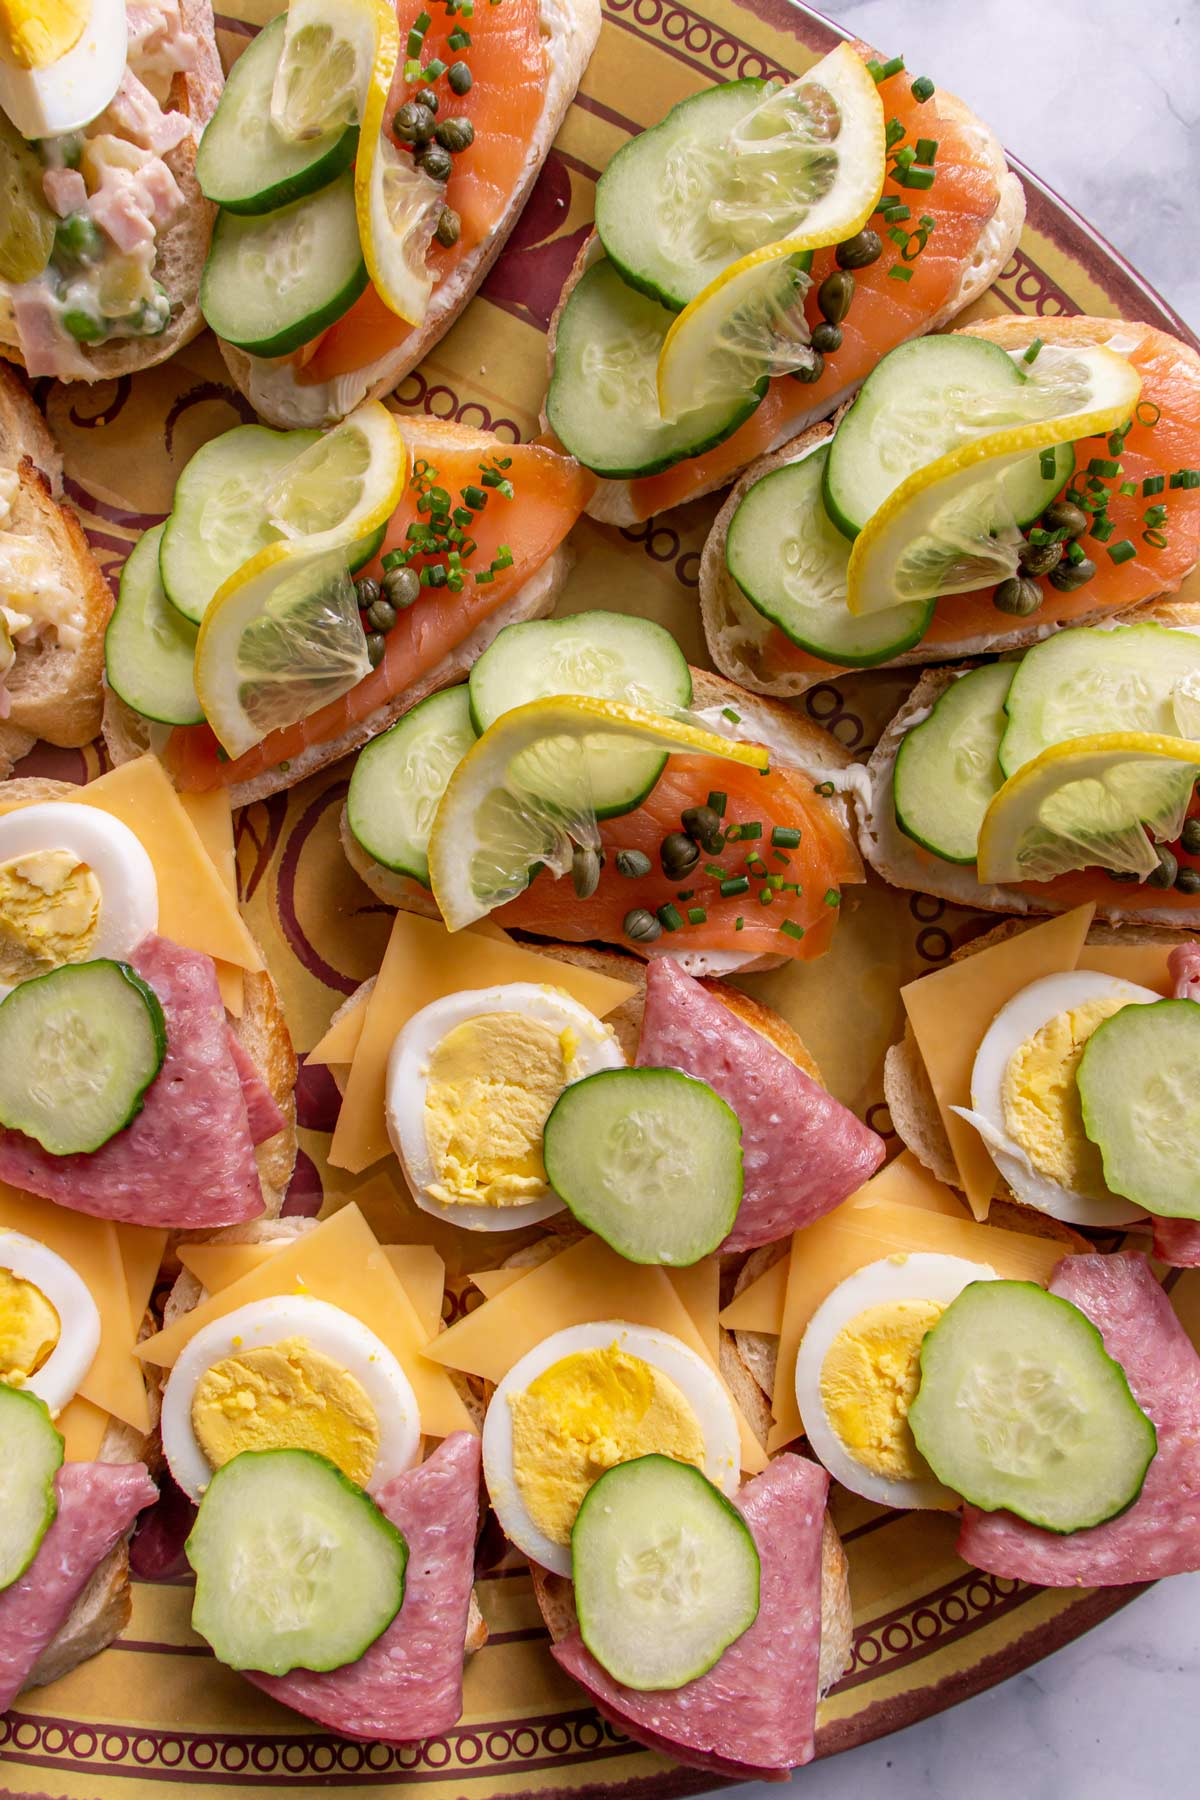 Two varieties of Czech open-faced sandwiches topped with salami and cheese and smoked salmon.